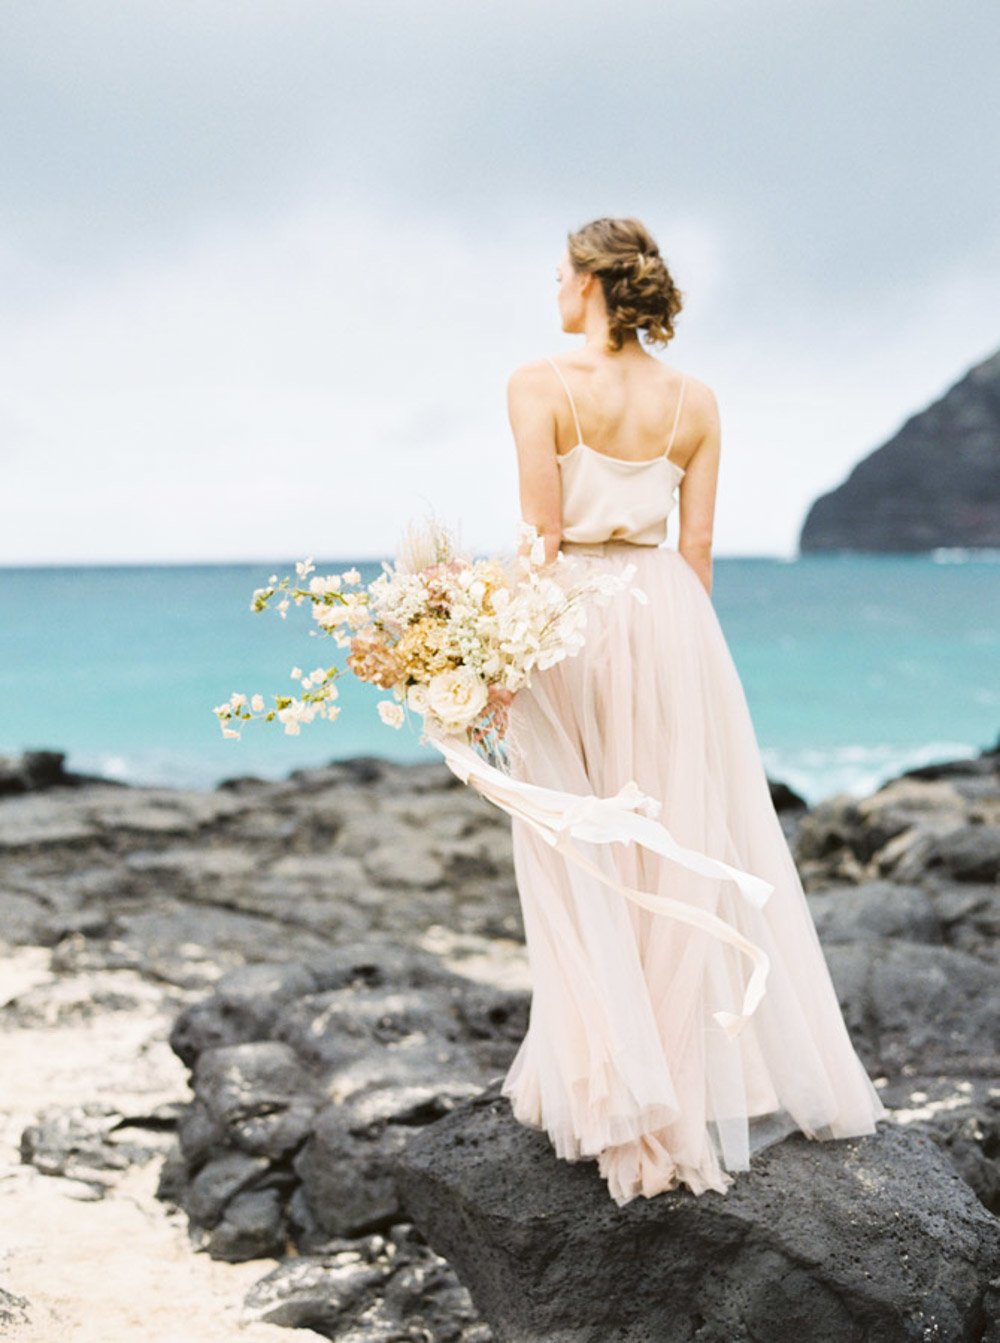 Hawaii Destination Wedding Photographer Sheri McMahon - Hawaii Beach Elopement-00020